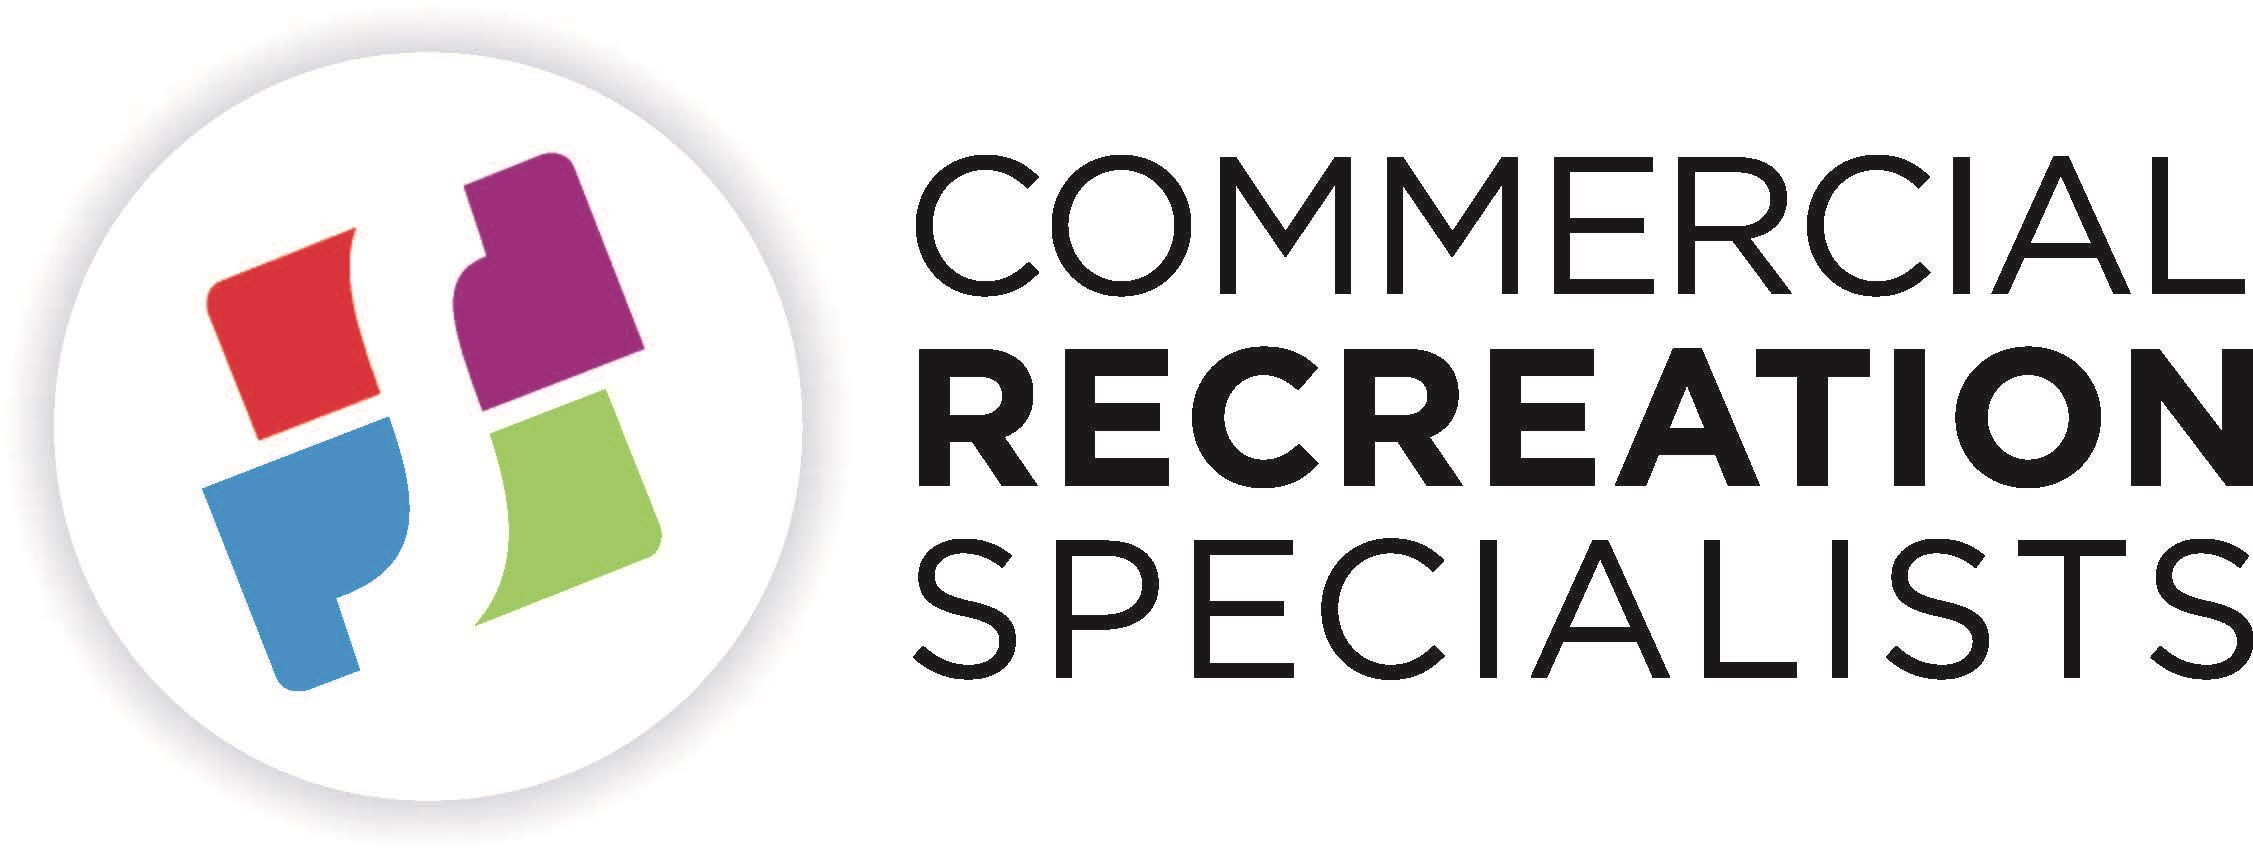 CRS_circlesymbol-4c - Commercial Recreation Specialists - Stacked black txt - Shadow